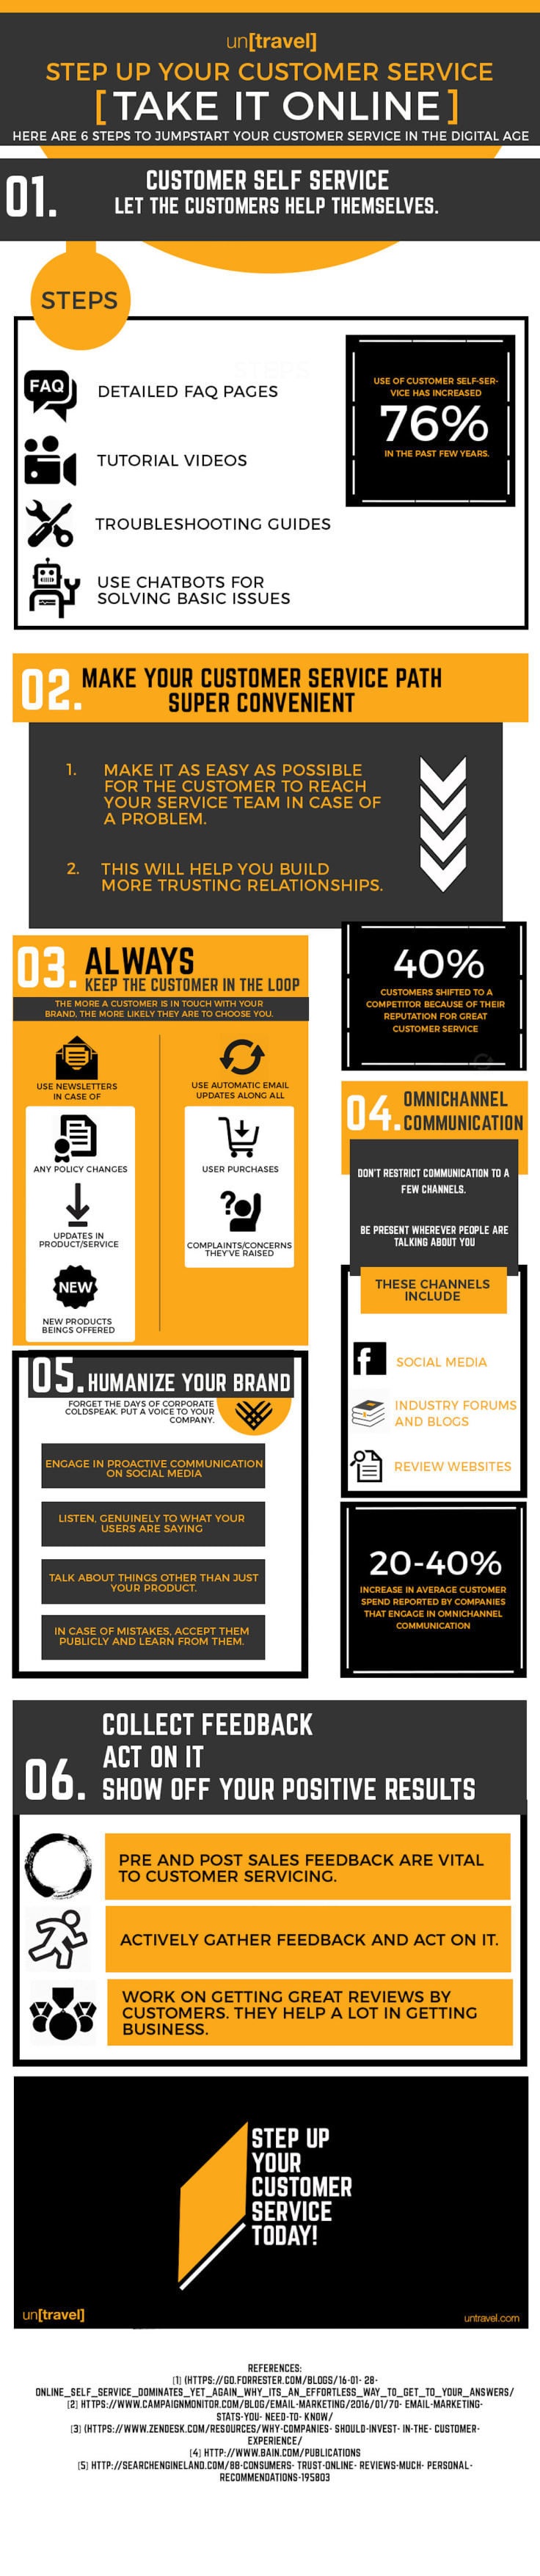 Customer service standards infographic